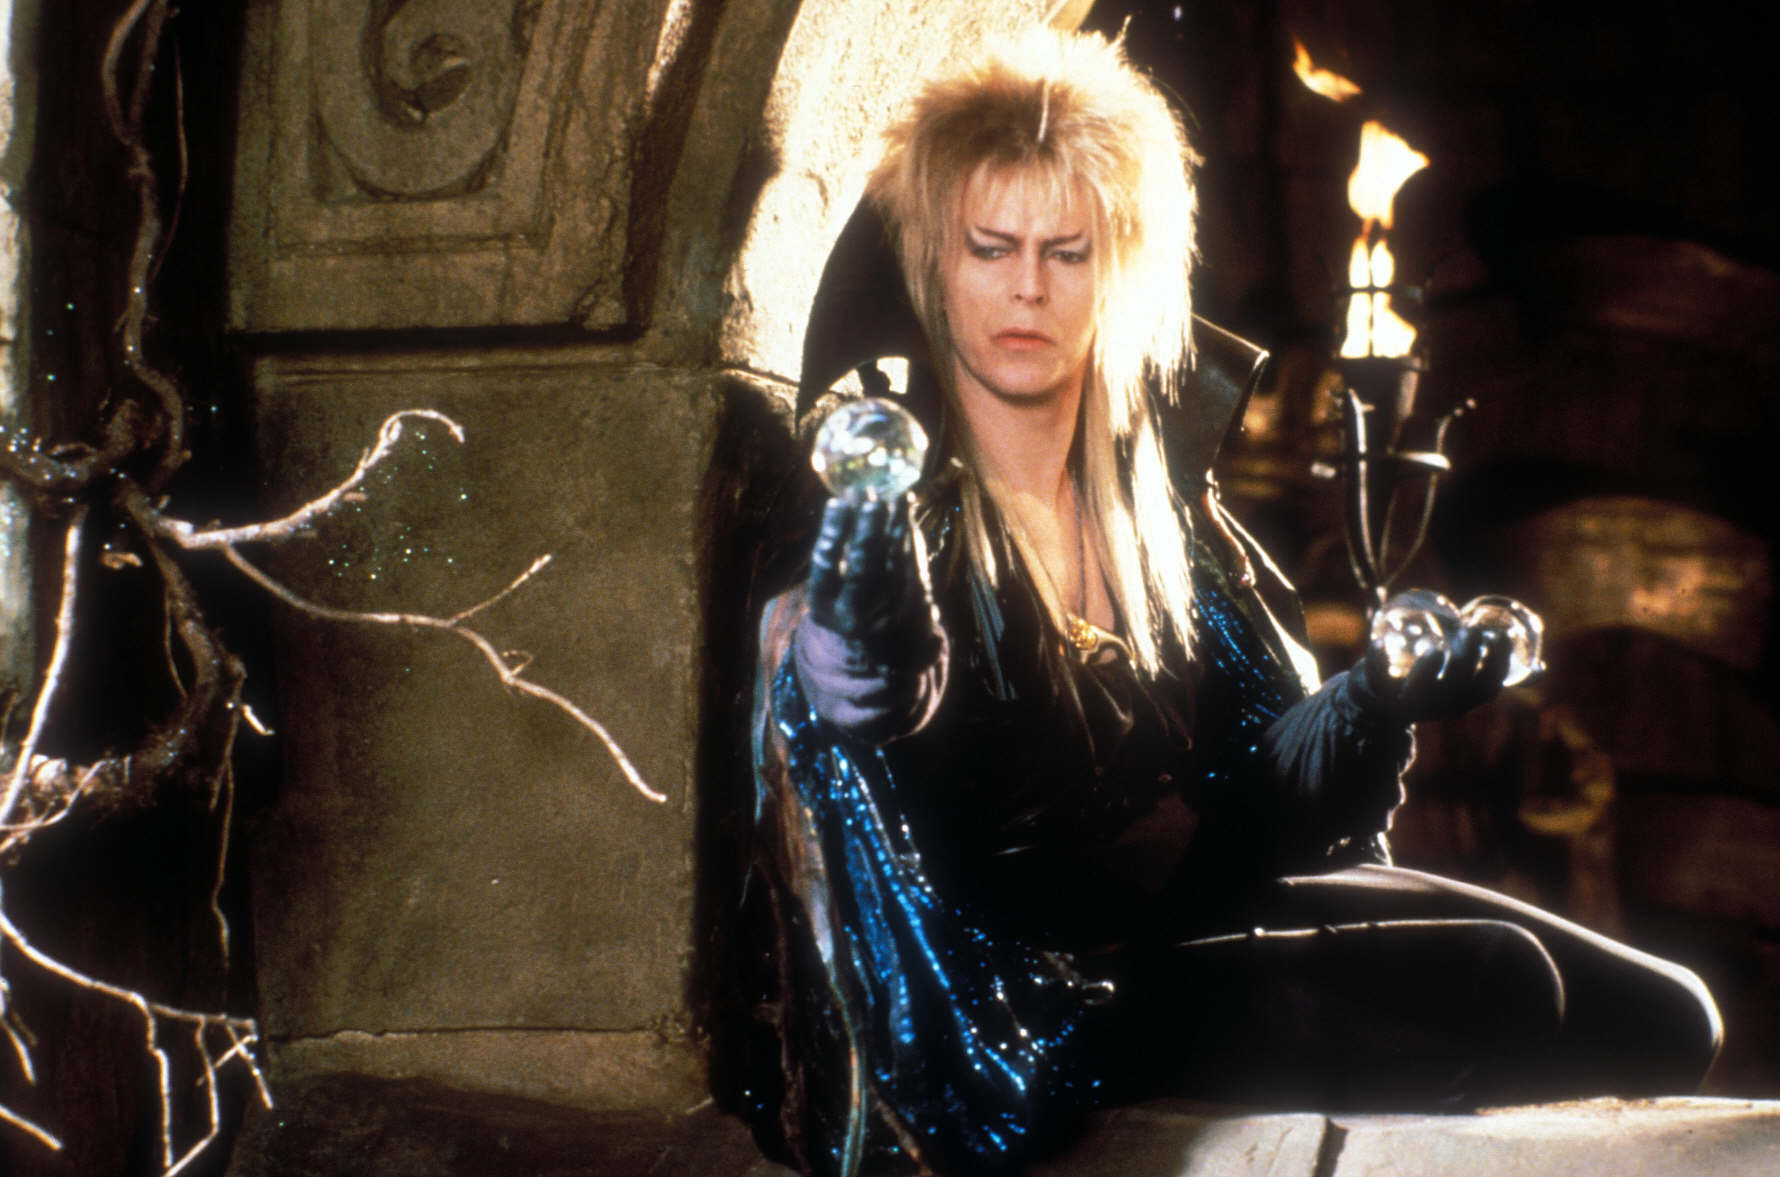 Jim Henson's Labyrinth: Under The Spell Shows a Goblin's Worth